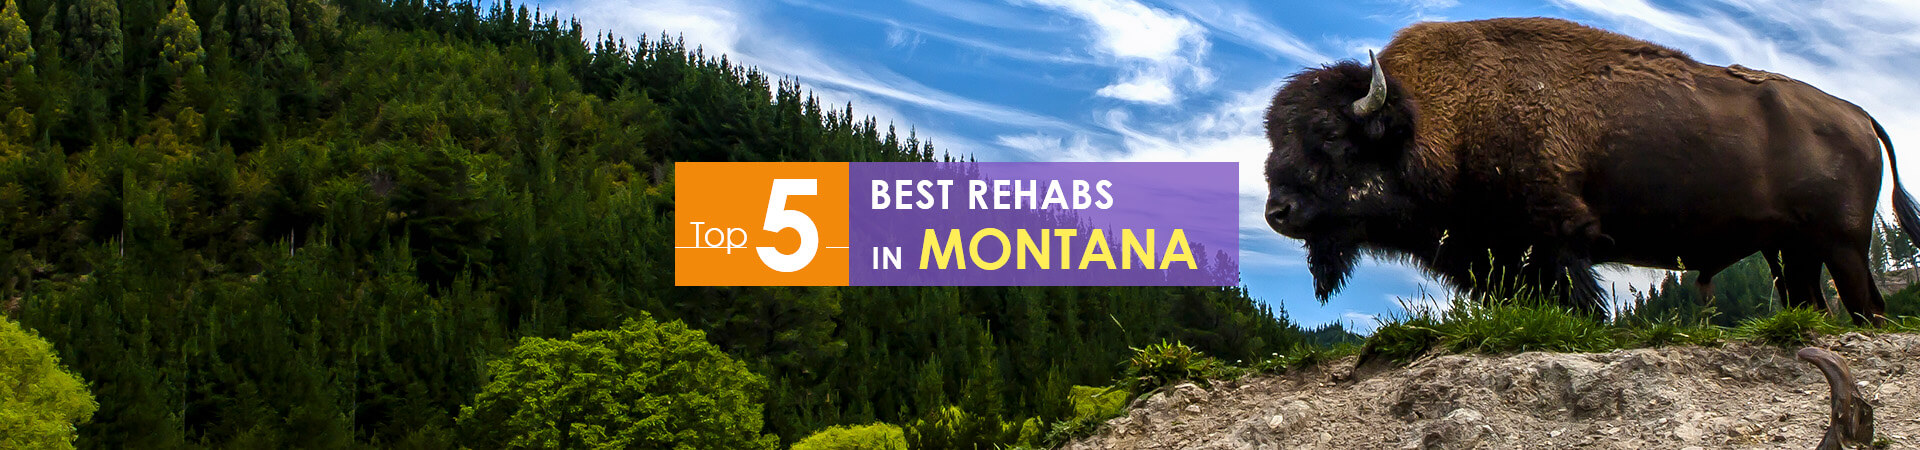 buffalo bison and top 5 rehabs in Montanacaption